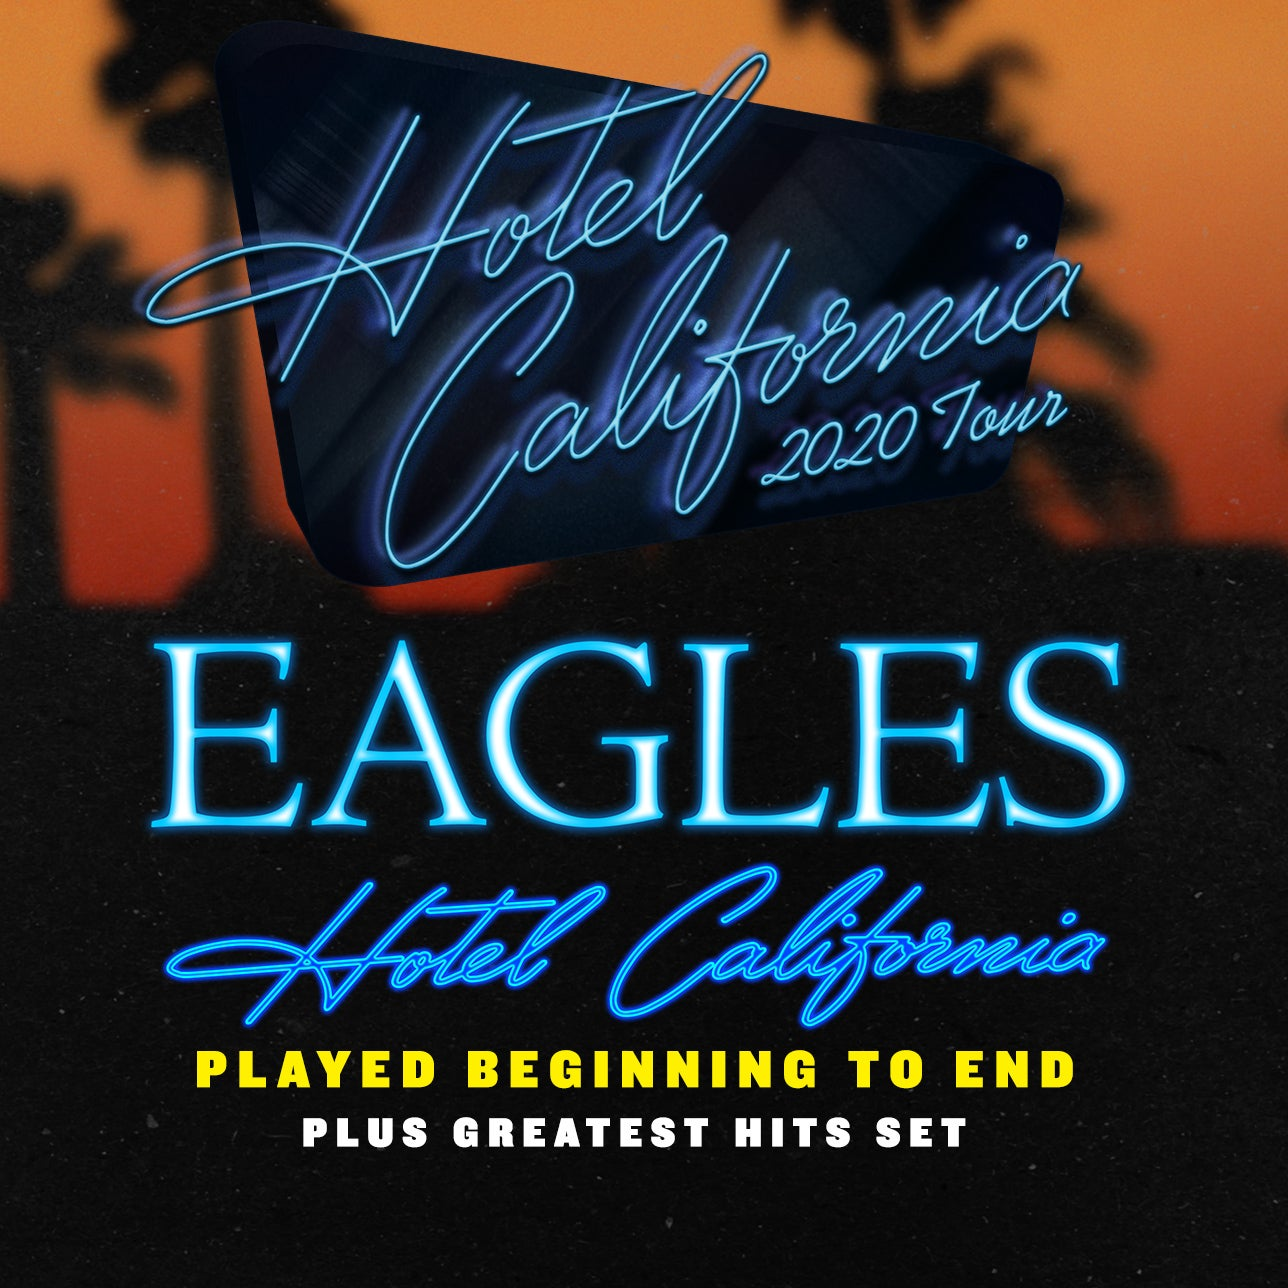 Rescheduled - Eagles